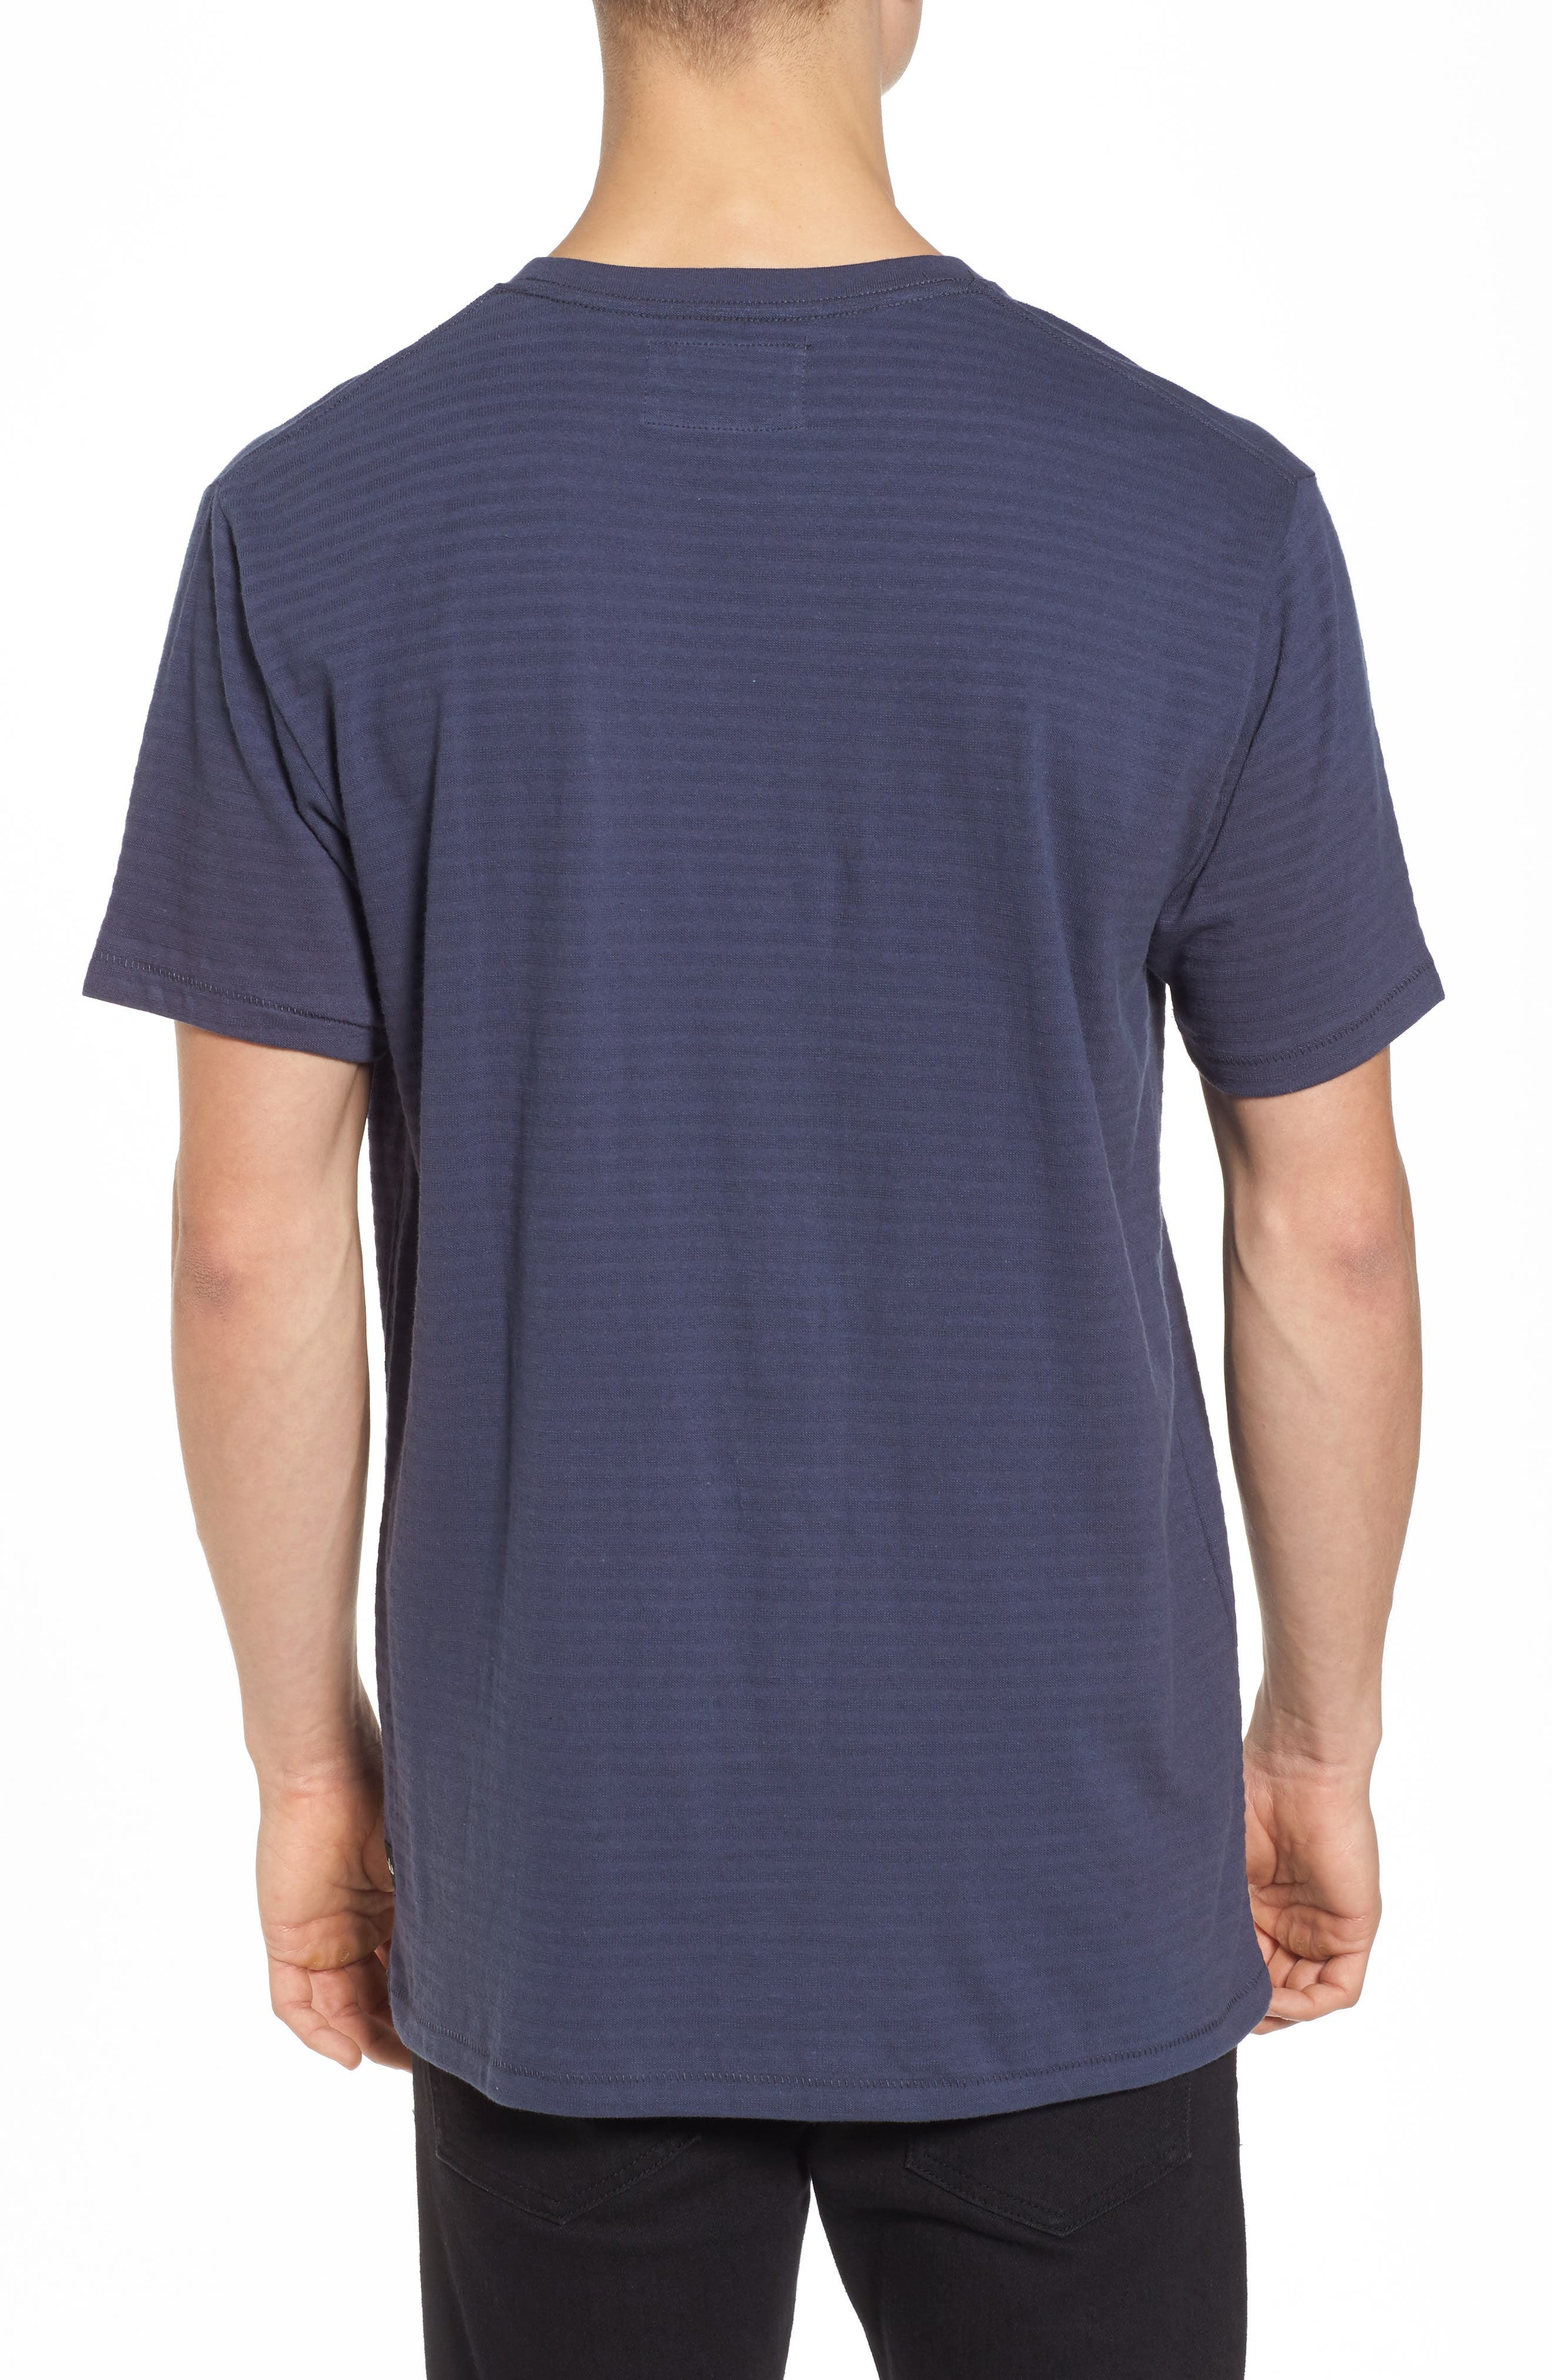 B. Elusive Pocket T-Shirt,                             Alternate thumbnail 4, color,